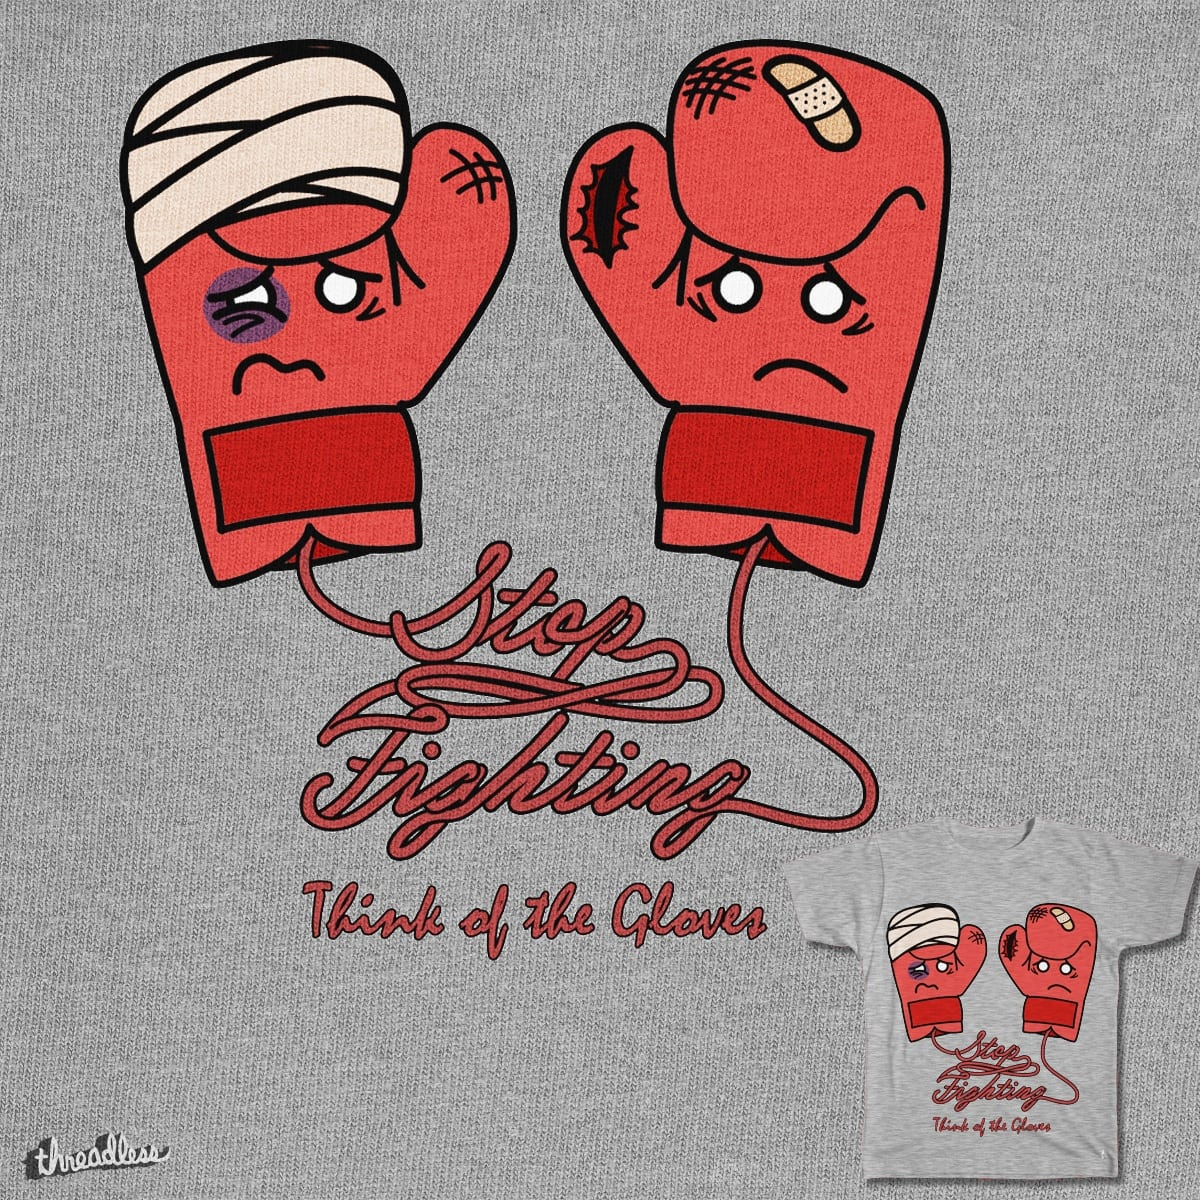 Think of the Gloves by BrainMatter on Threadless